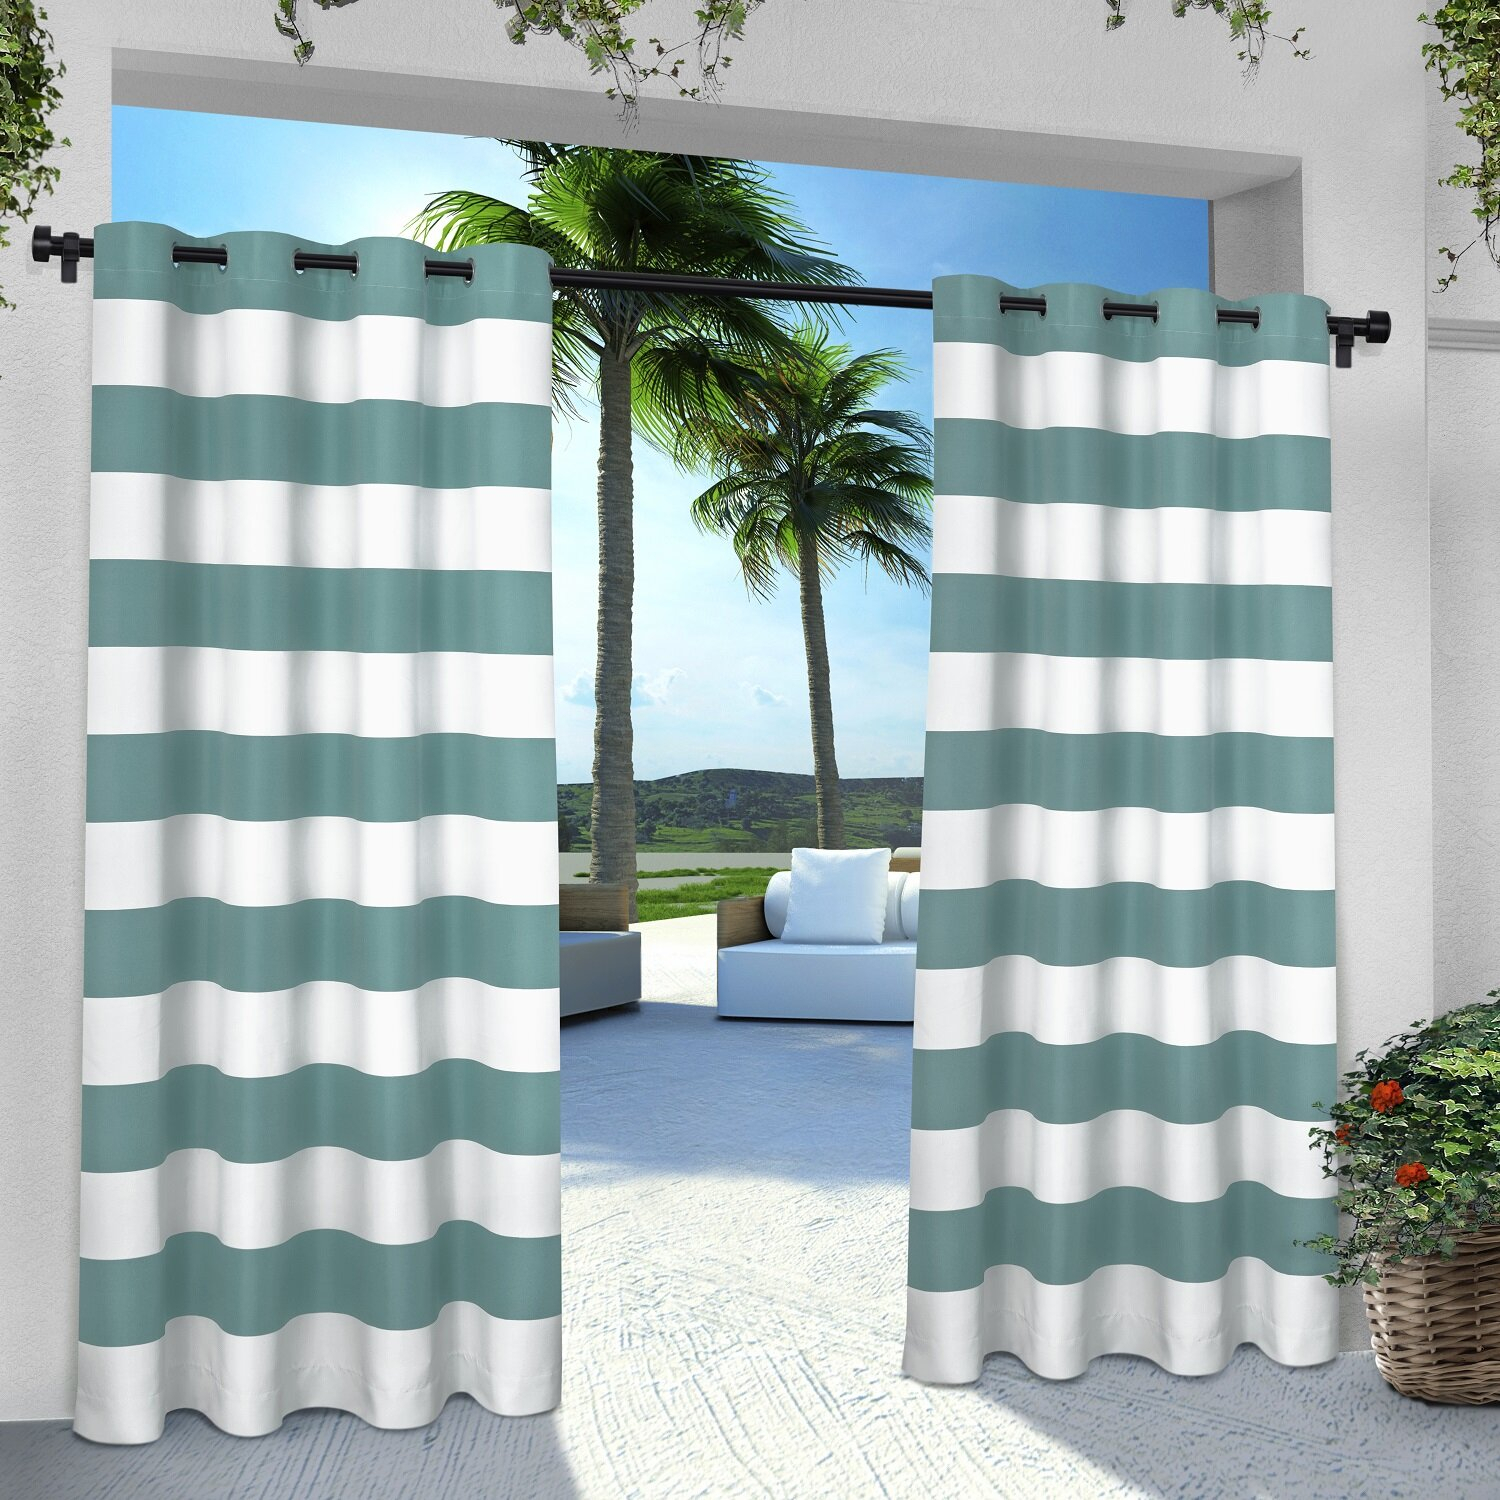 Plant City Striped Room Darkening Grommet Curtain Panels Intended For Ocean Striped Window Curtain Panel Pairs With Grommet Top (View 9 of 20)